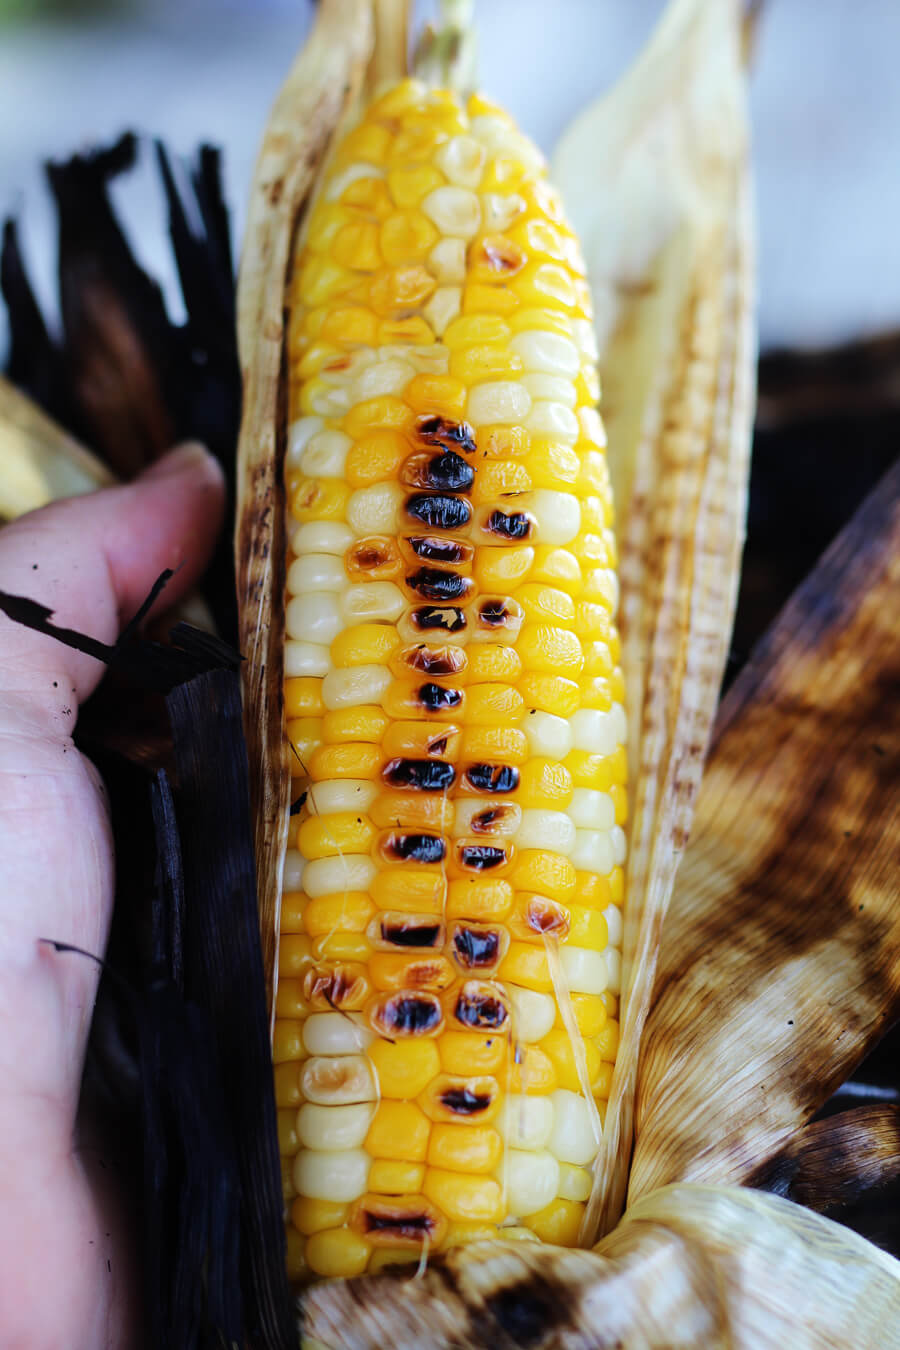 a picture of a golden ear of corn that has been grilled in the husk, with the burnt husk peeled back to expose the kernels